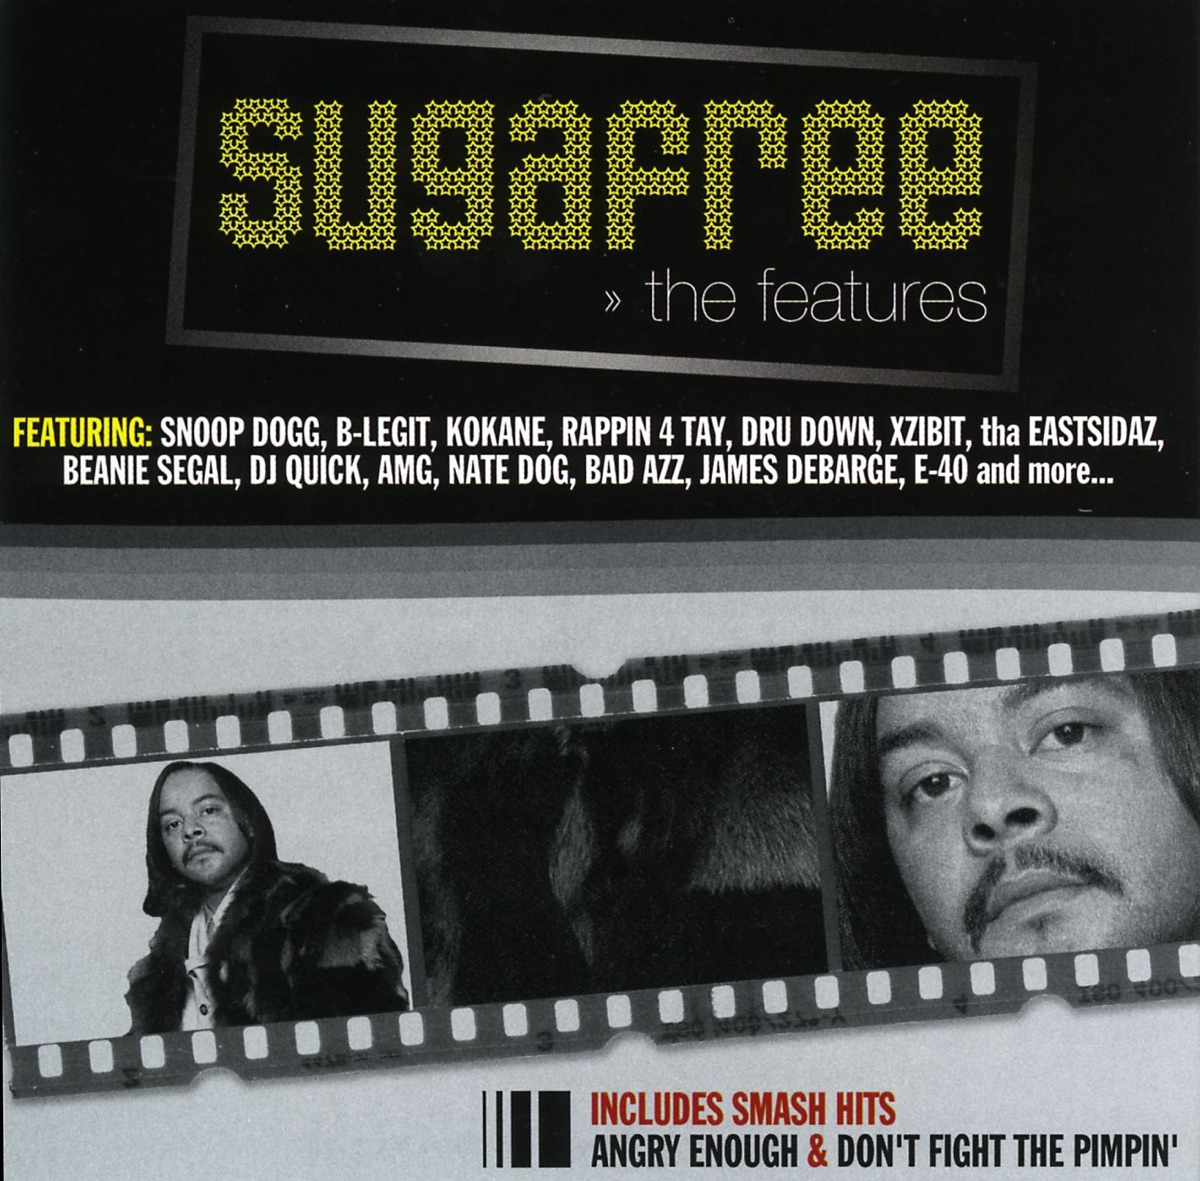 Suga Free: The Features, Vol  1 Album Cover by Suga Free